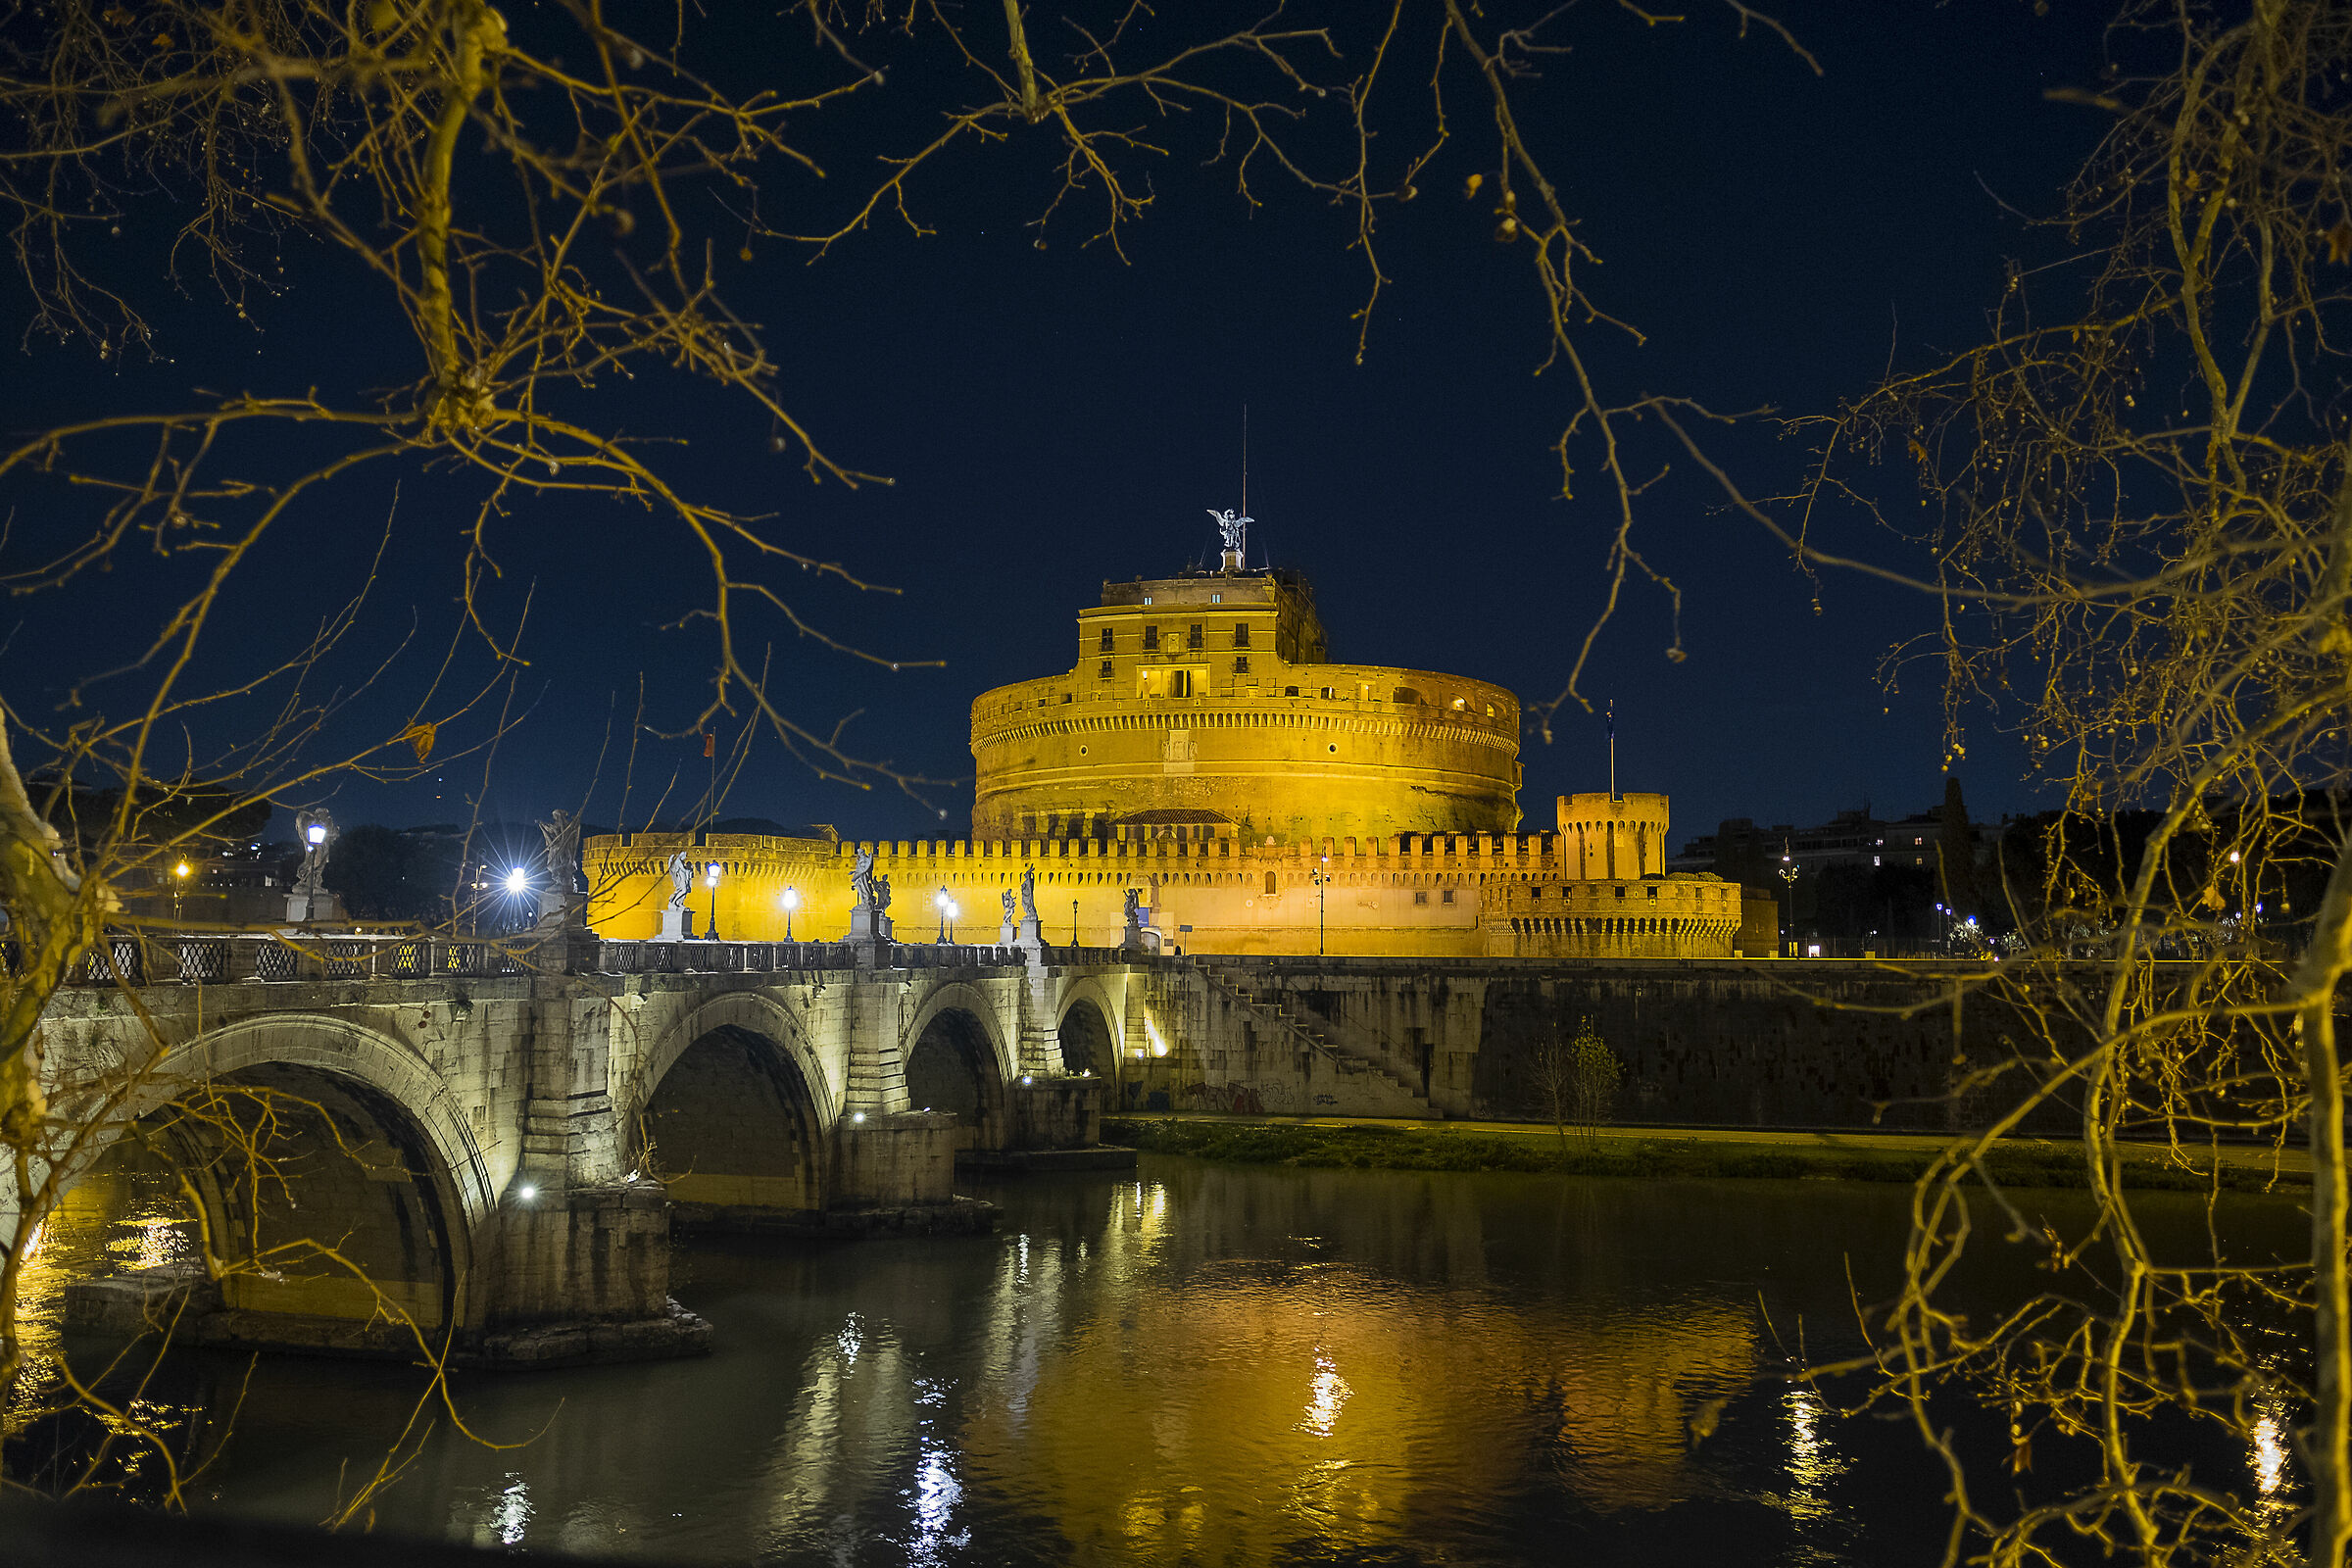 Castel Sant'Angelo by night ...